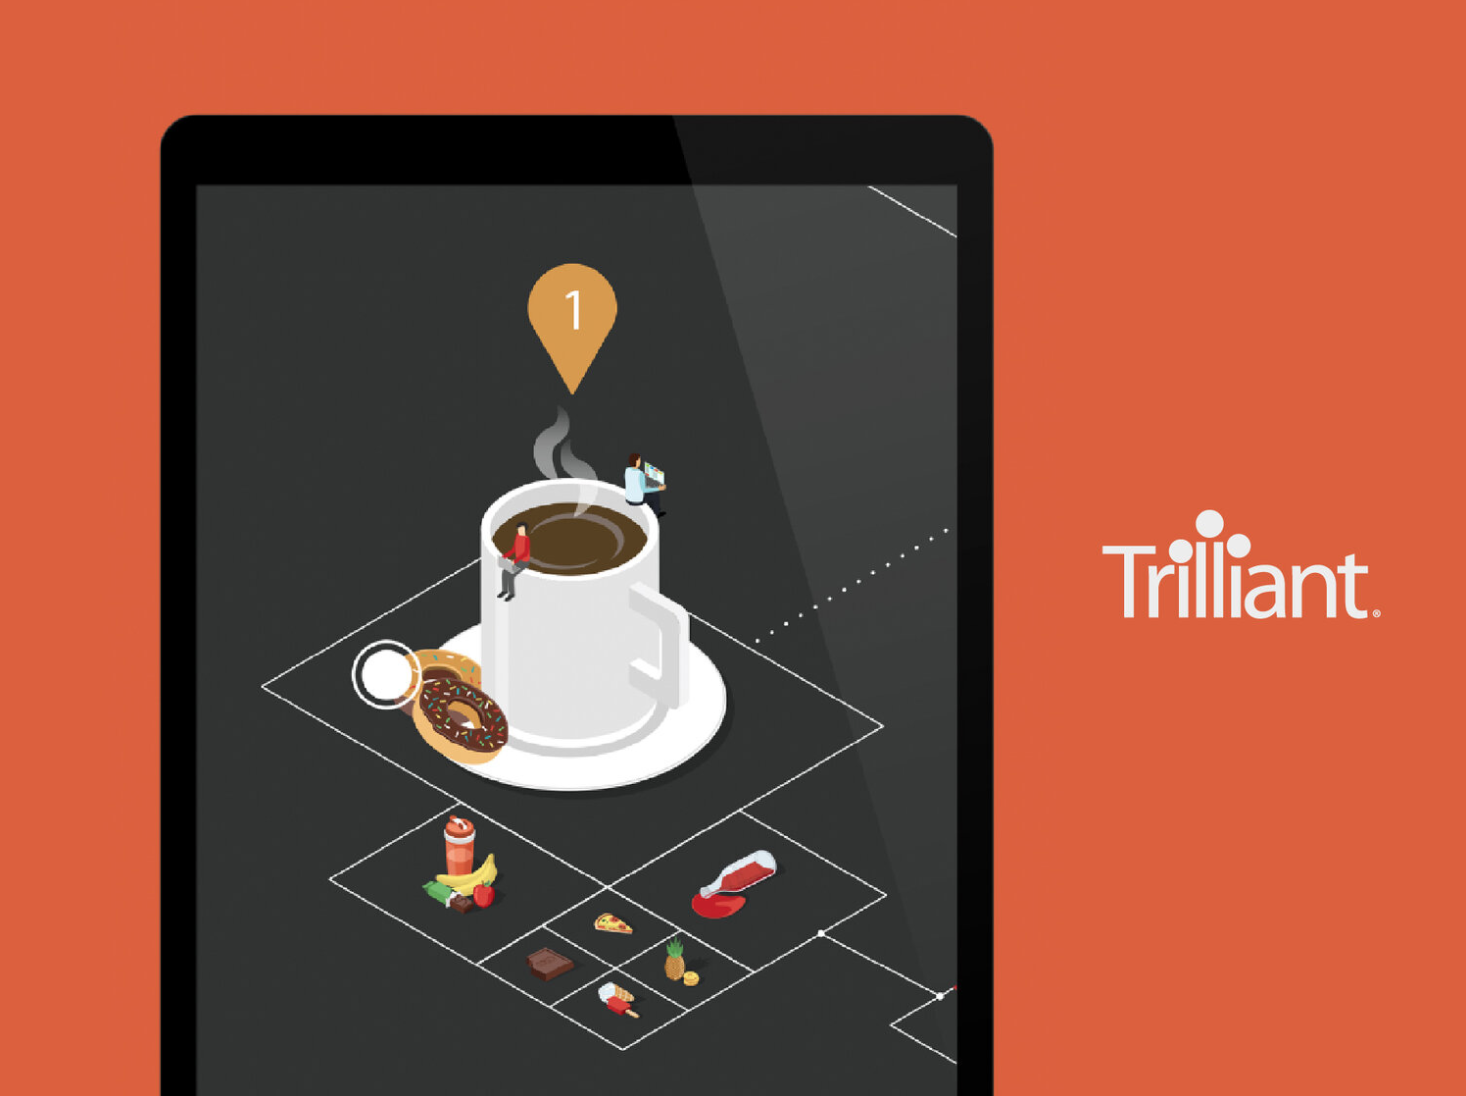 Trilliant Experiential Marketing Case Study